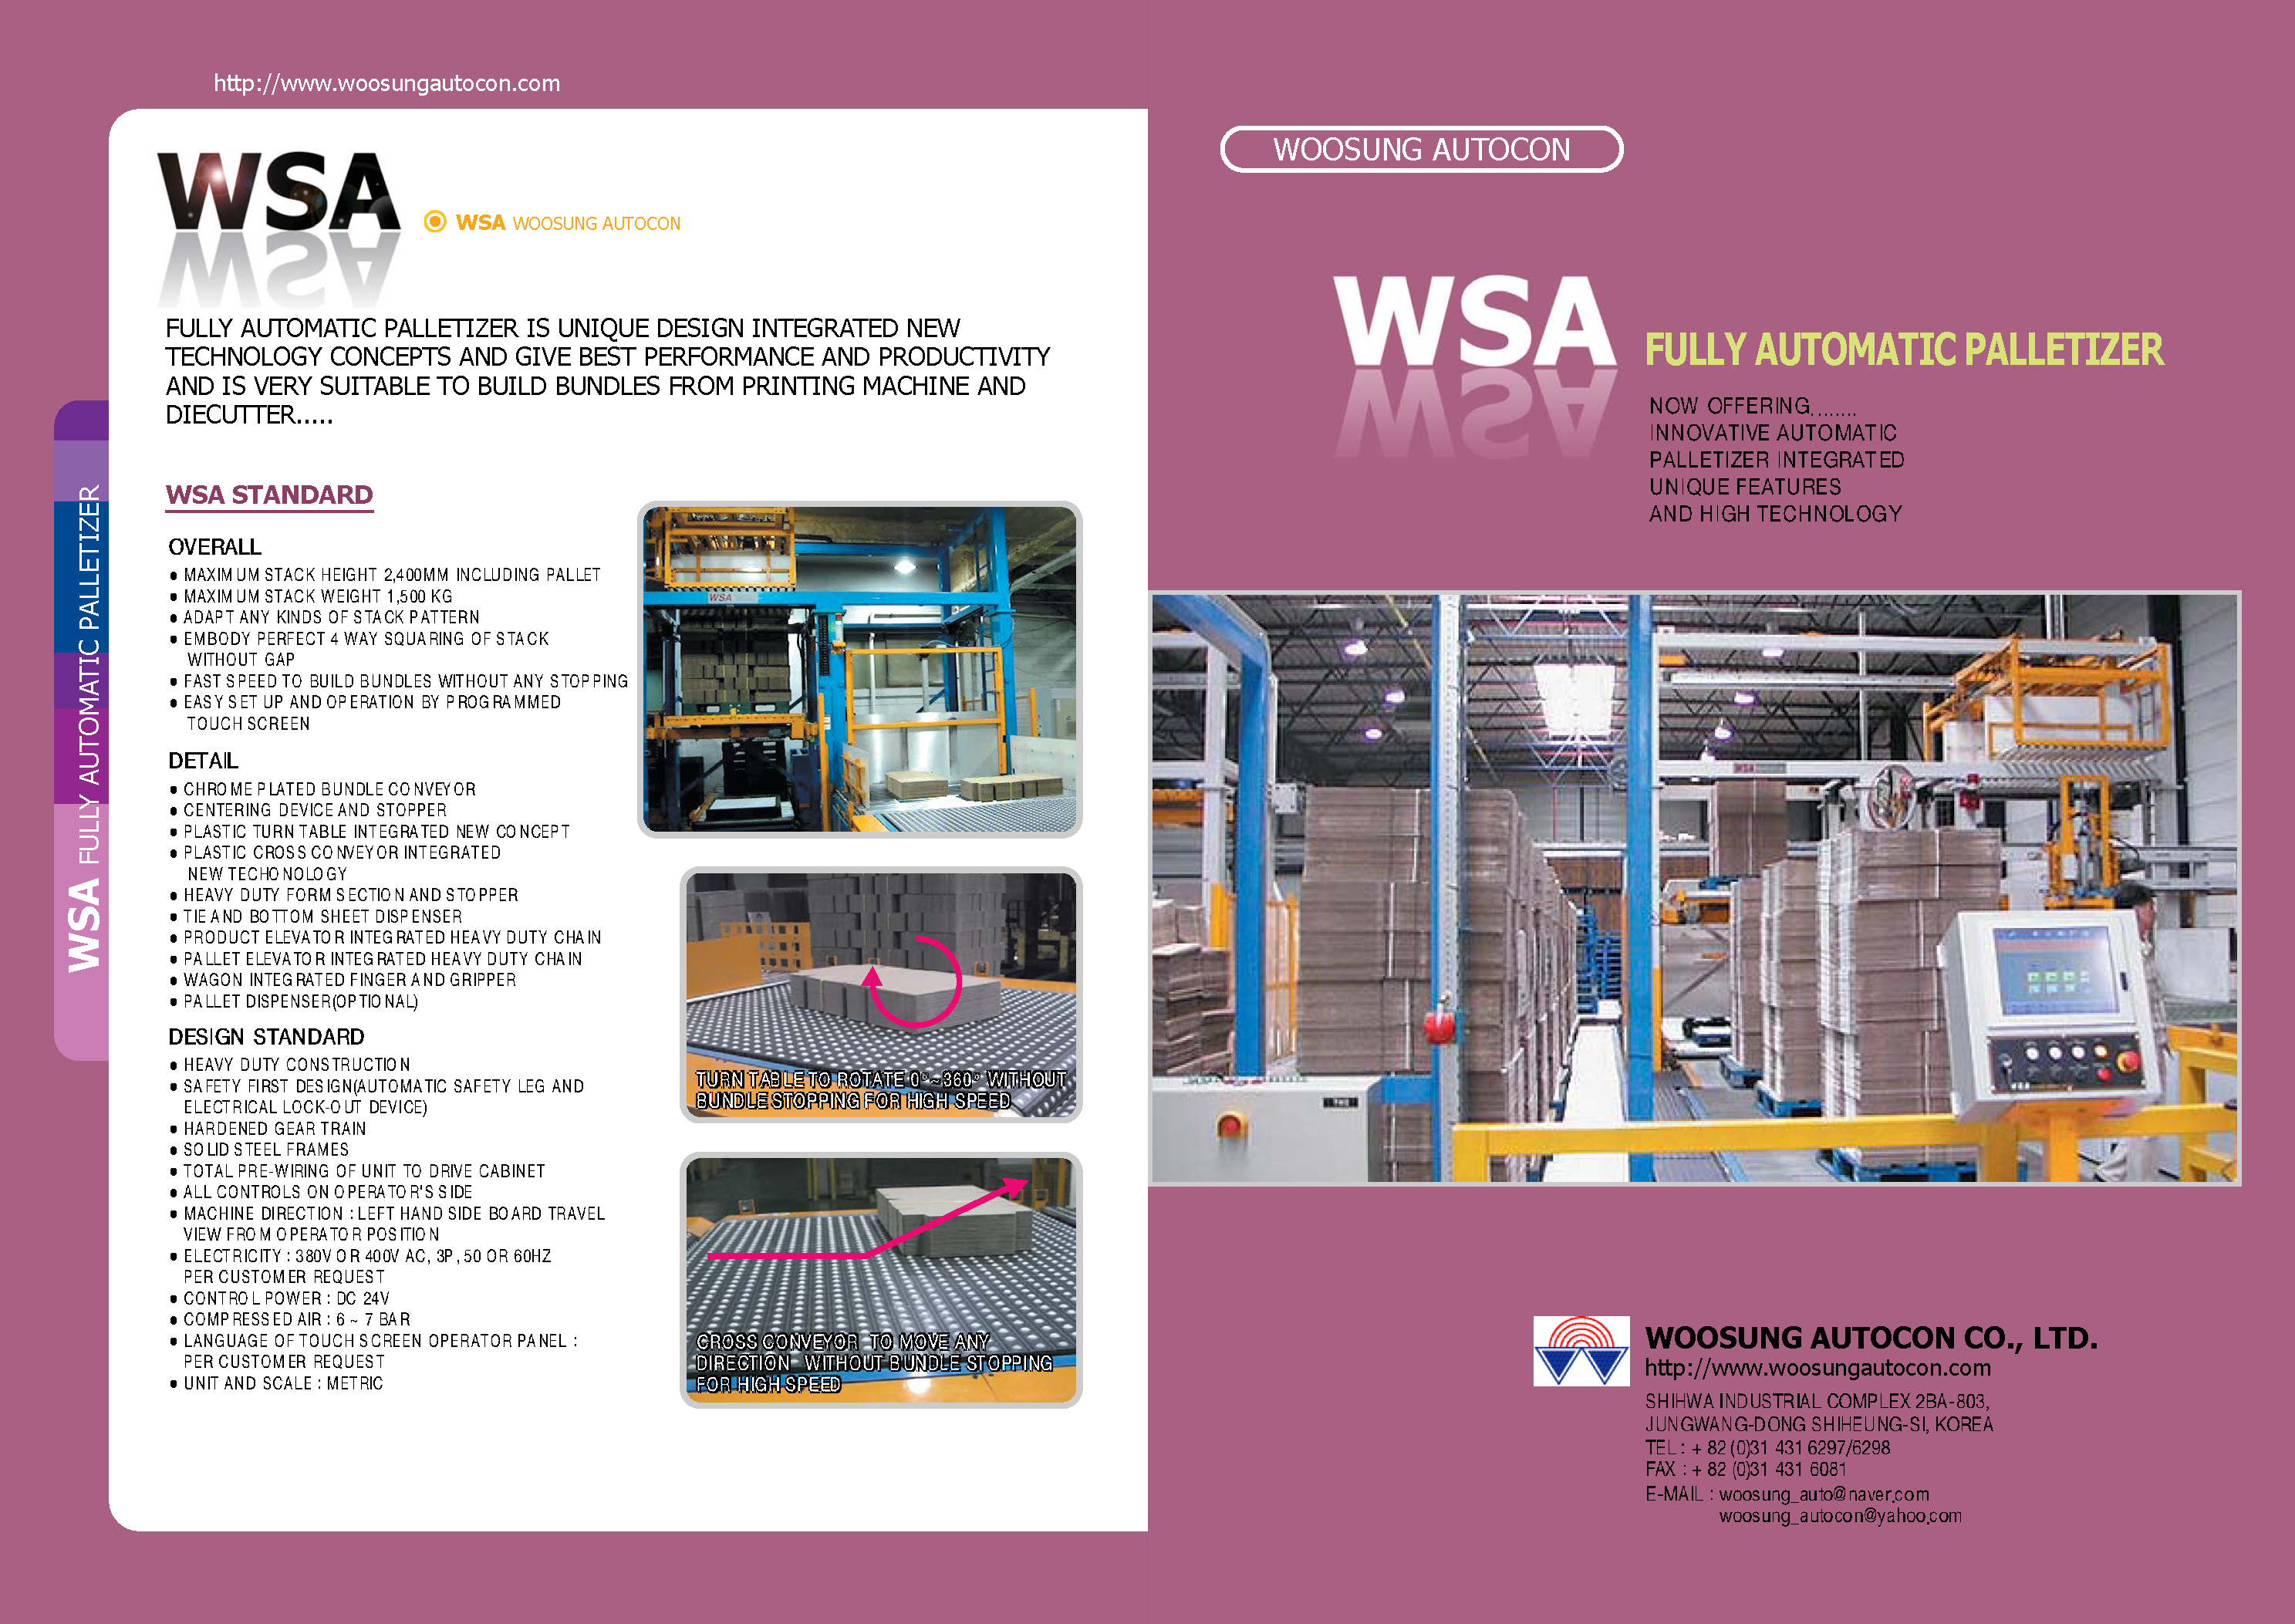 Learn more about WSA Load Formers and Palletizers in their brochure